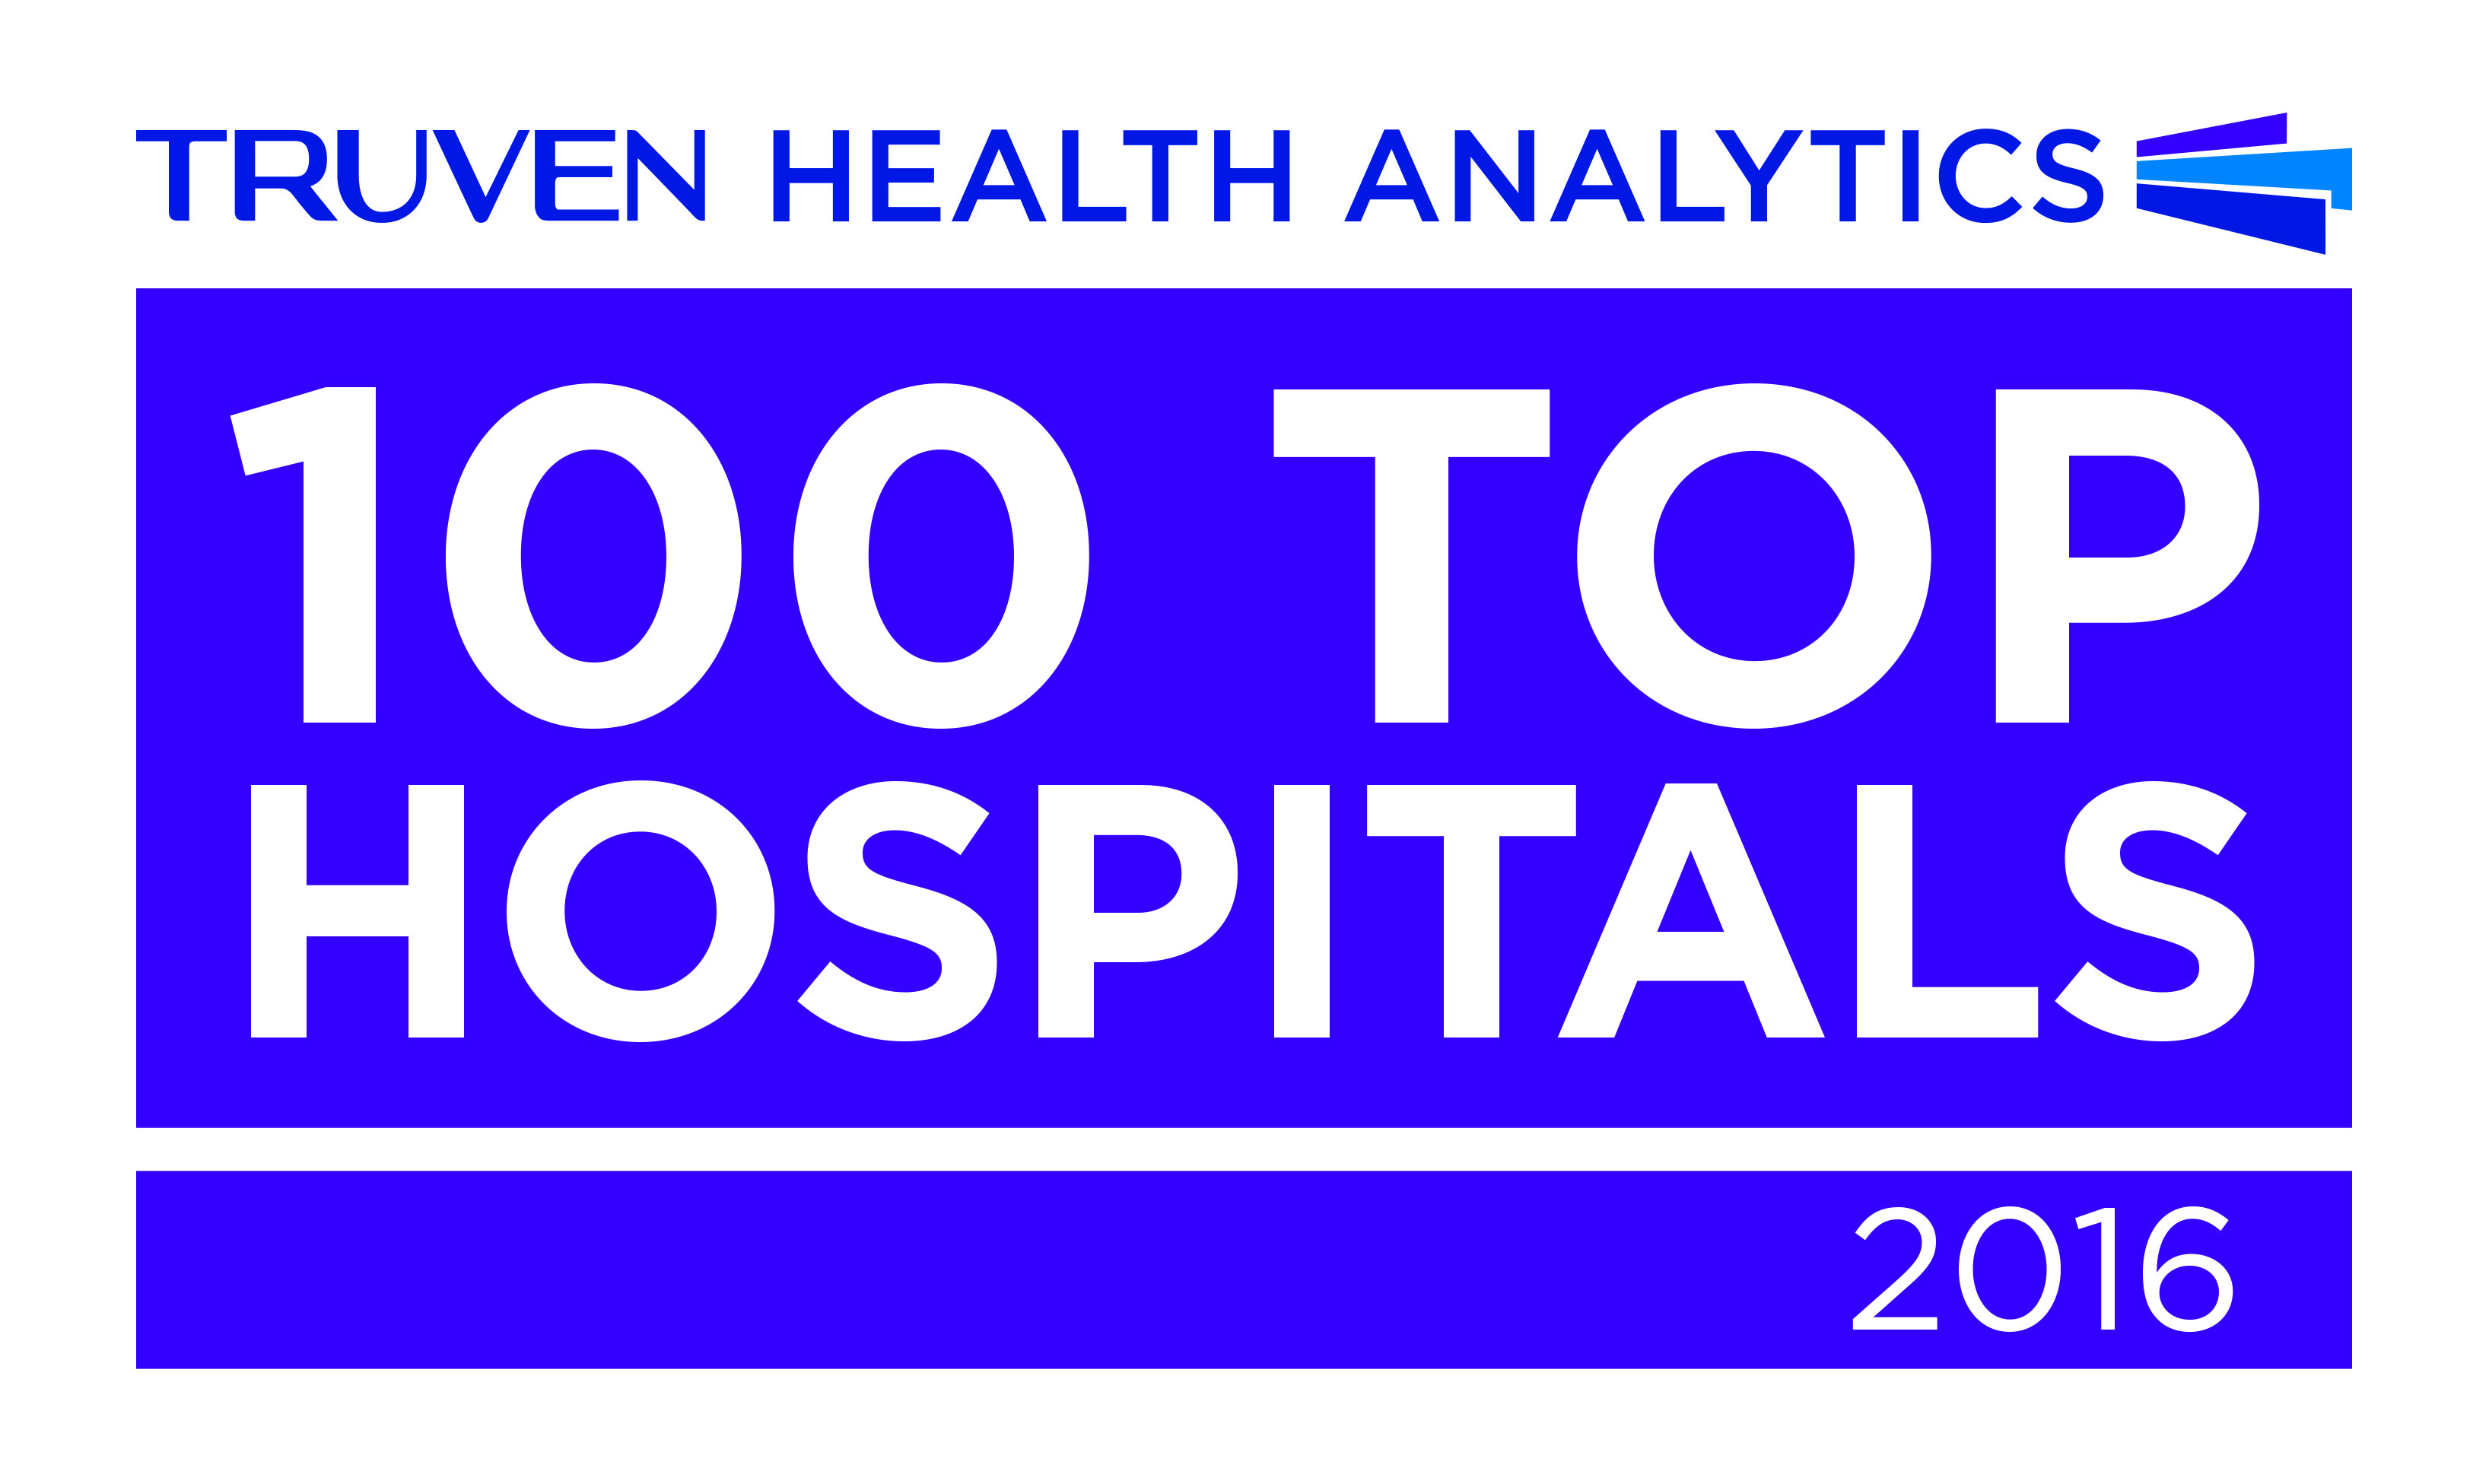 Truven 100 Top Hospital 2016 logo